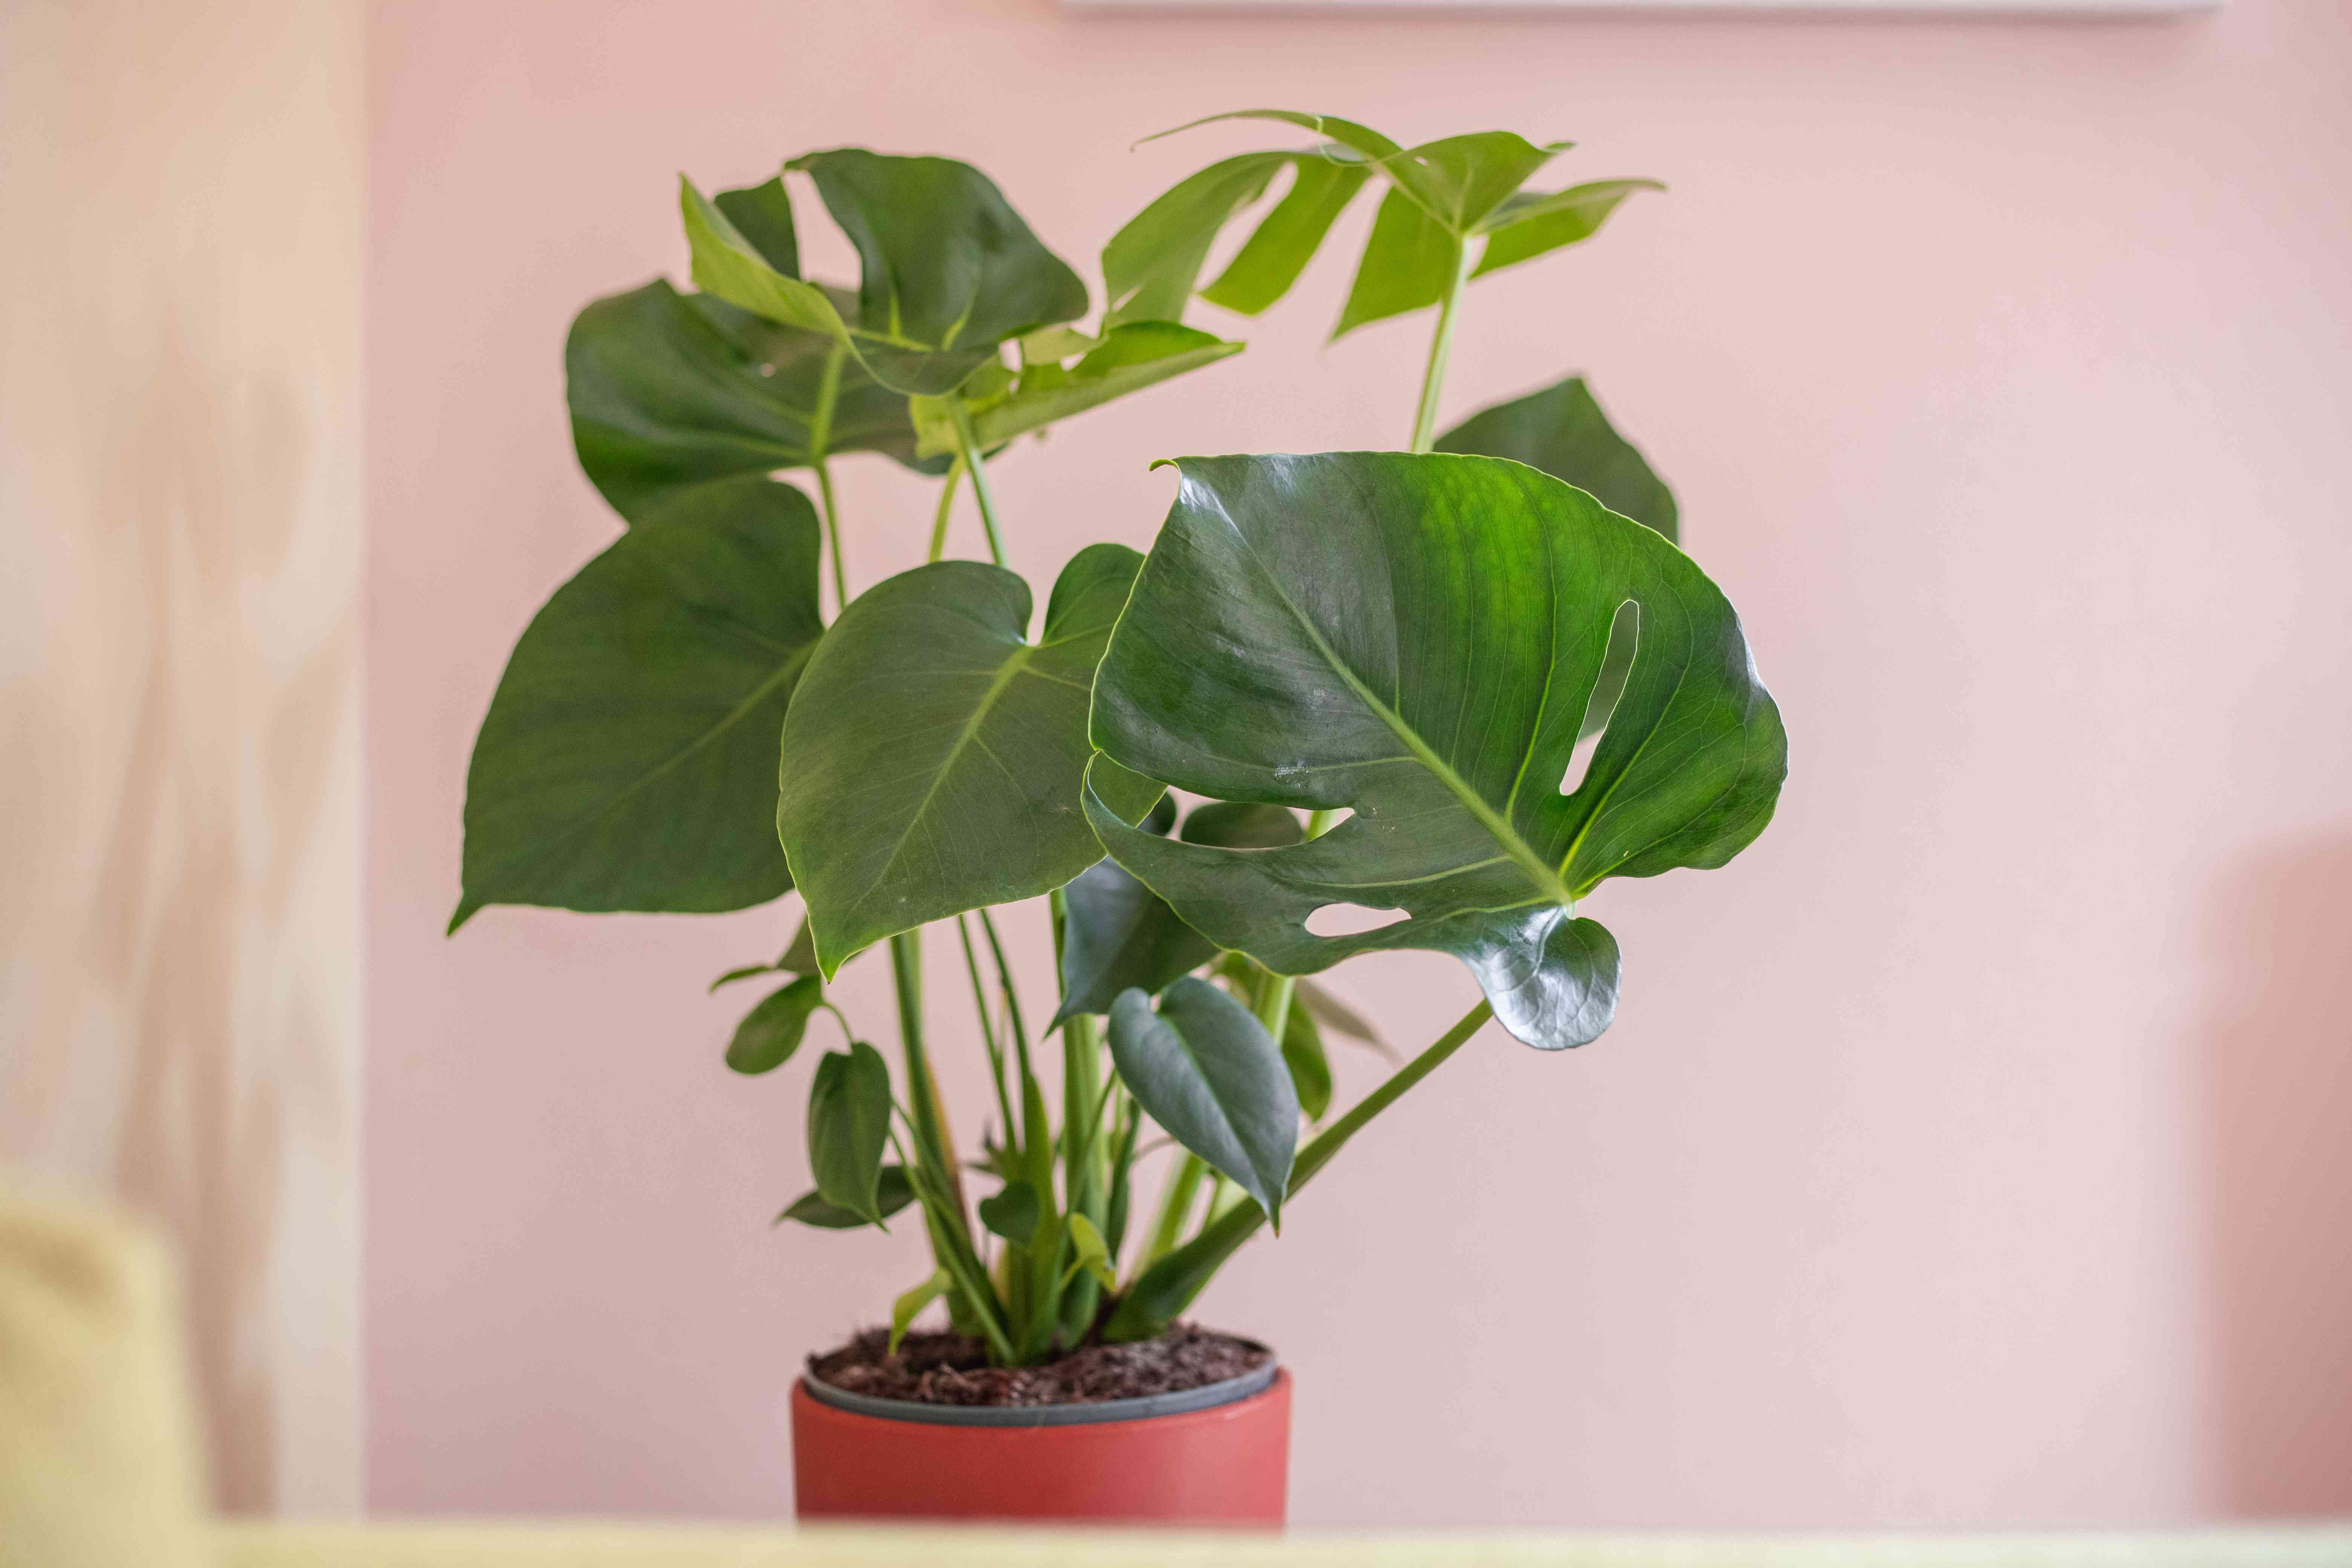 swiss cheese monstera houseplant with shadow against pink wall